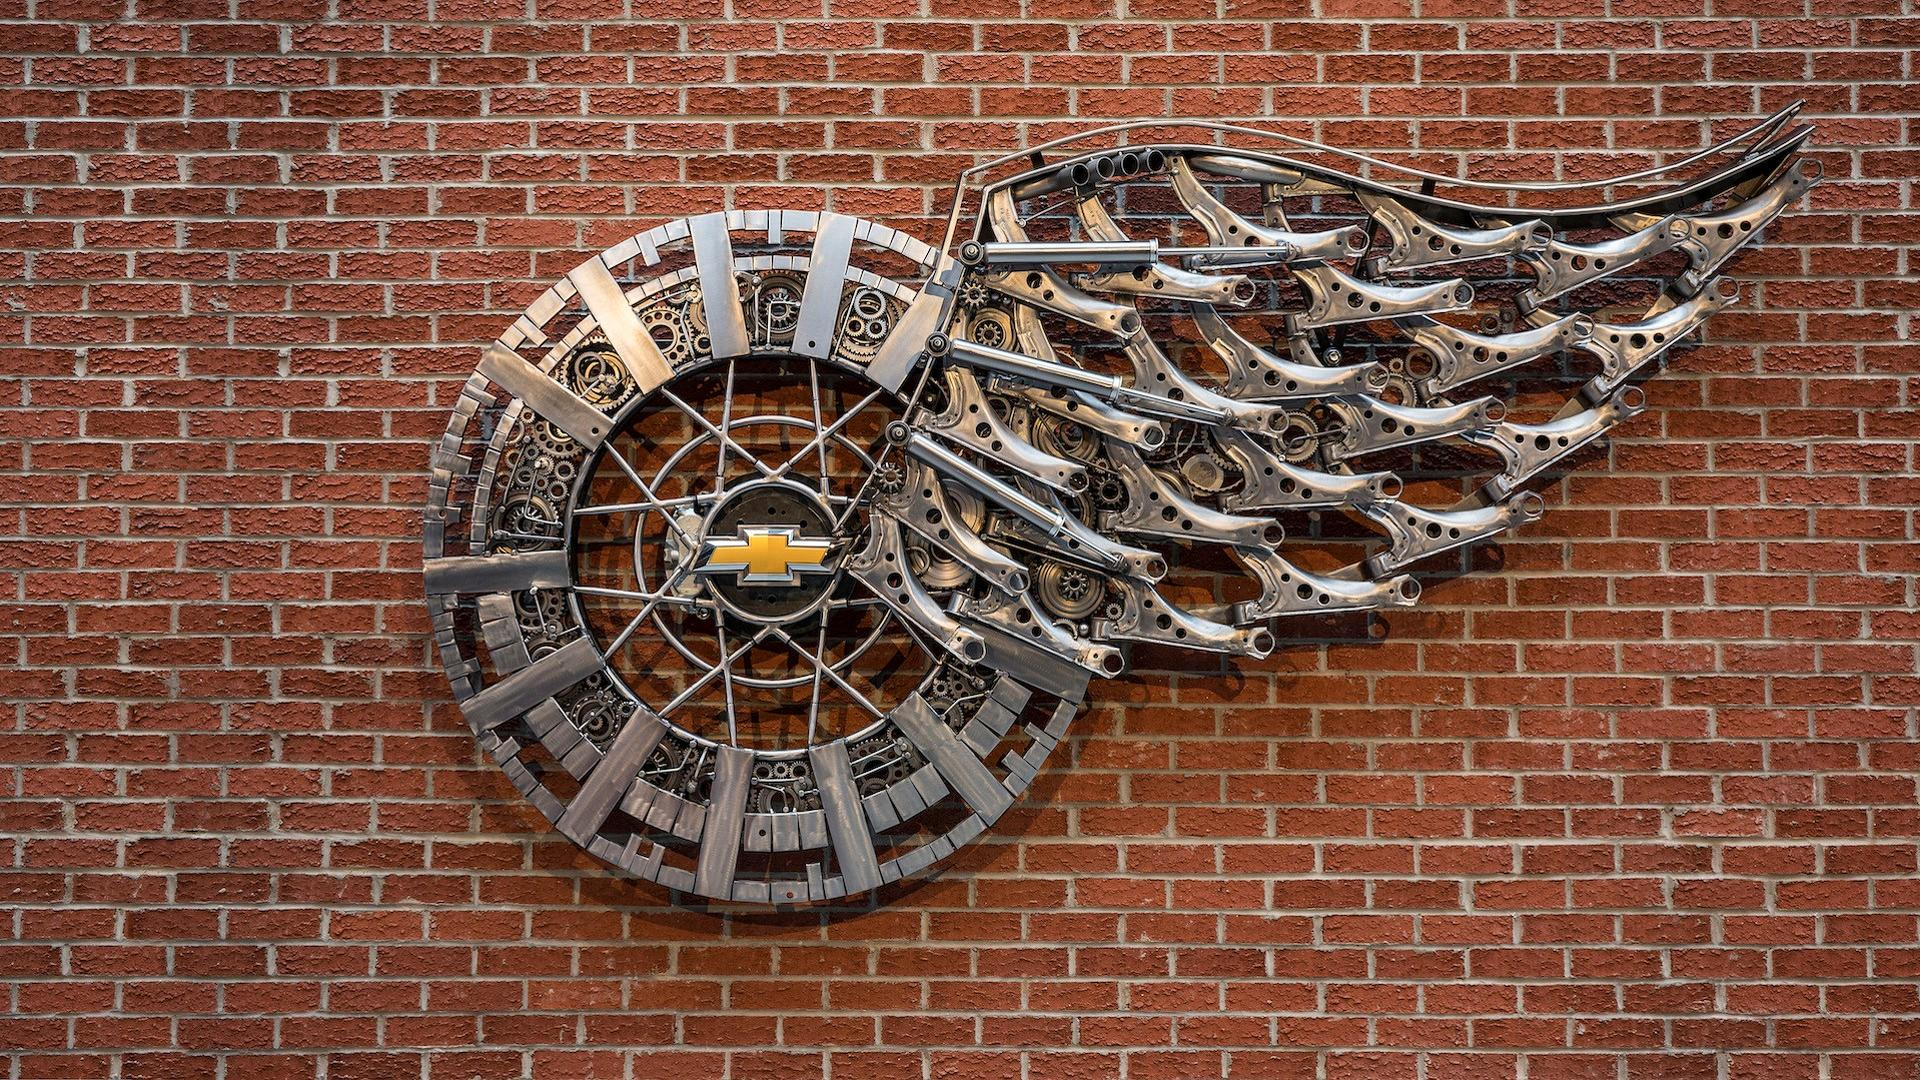 Super Cars 3d Wallpapers Chevy Honors New Detroit Red Wings Arena With Unique Sculpture